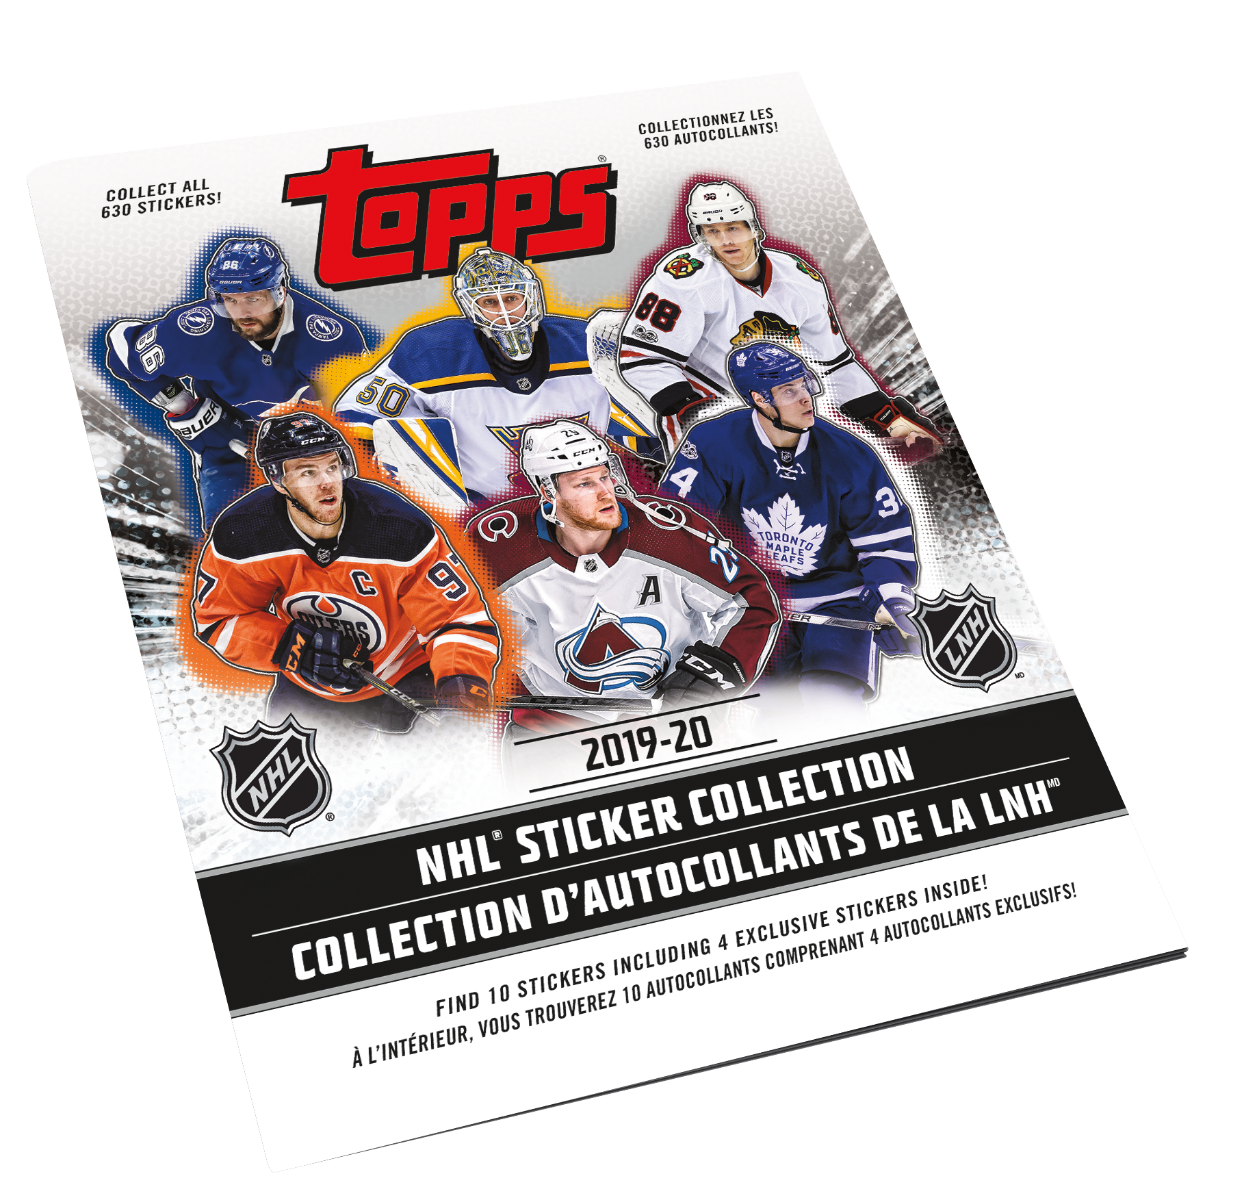 2019-20 NHL Sticker Collection Album